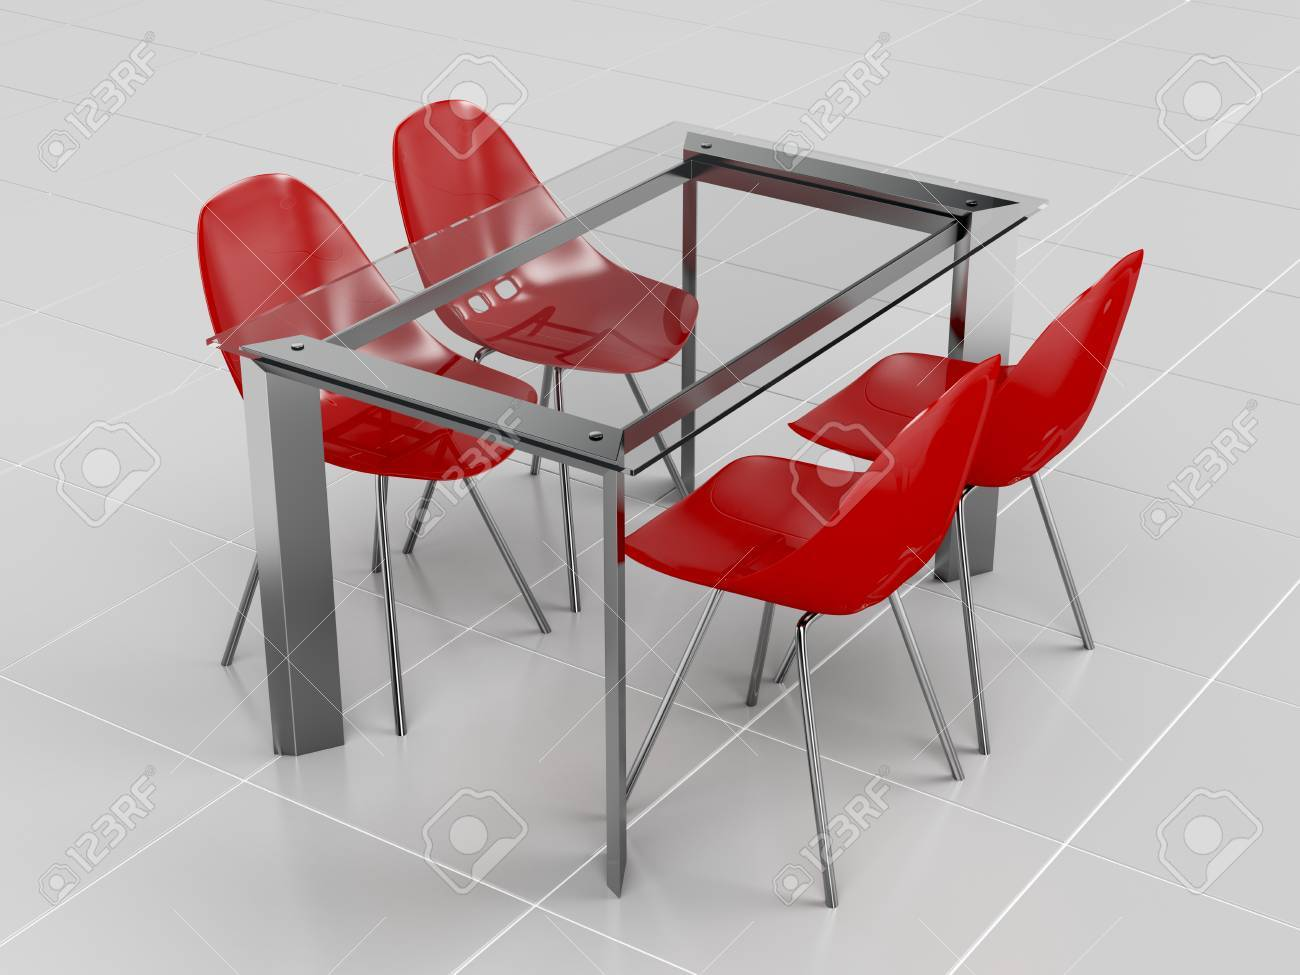 Glass Dining Table And Red Transparent Plastic Chairs Stock Photo Picture And Royalty Free Image Image 38377414